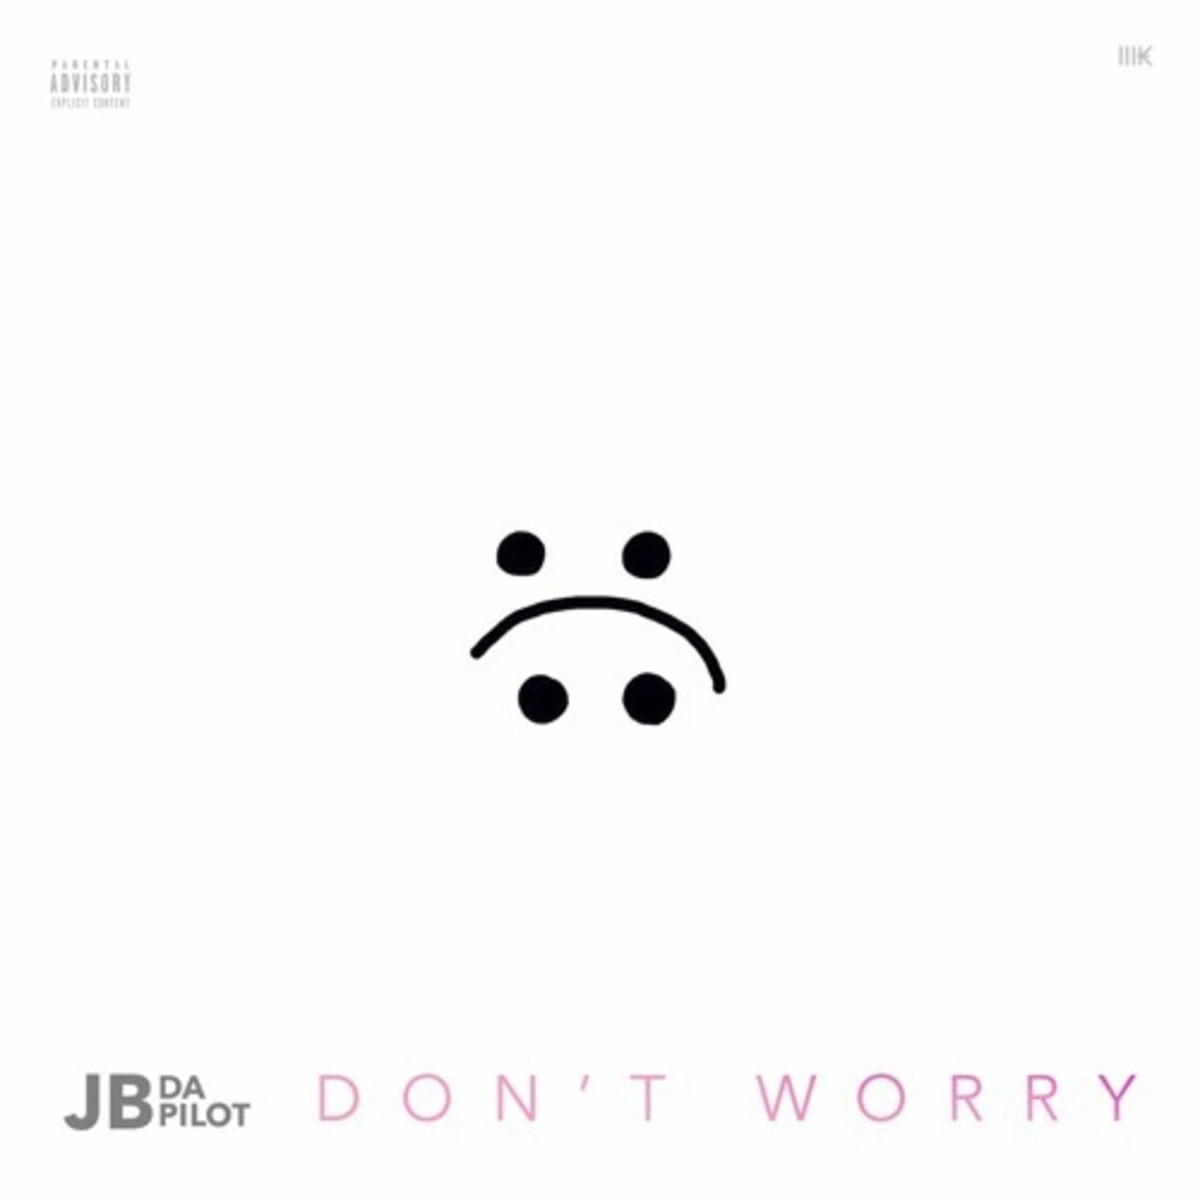 jbdapilot-dont-worry.jpg